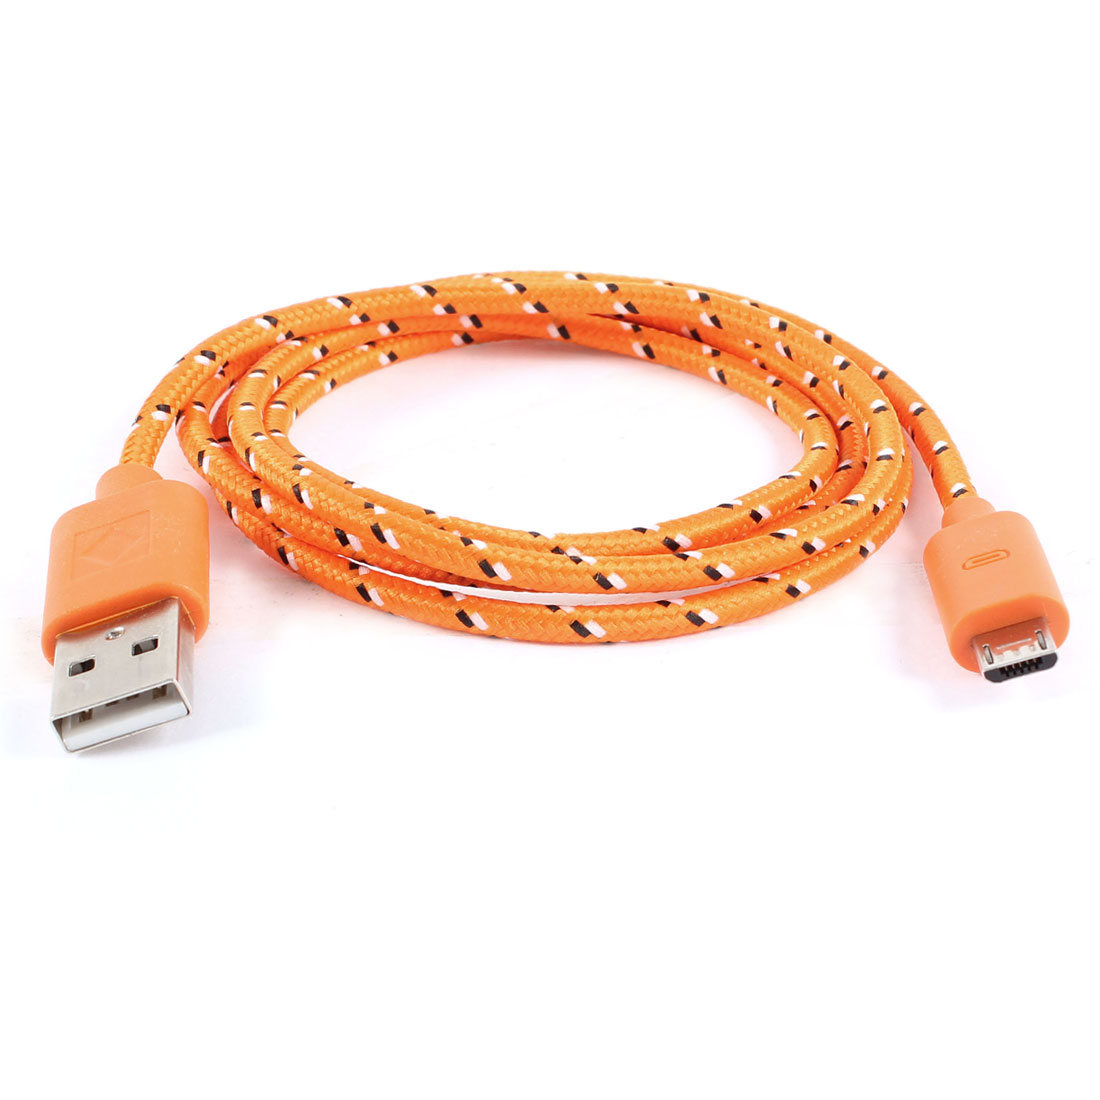 Unique Bargains 1M Extension USB Data Charge Cable Braided Cord Orange for Motorola V8